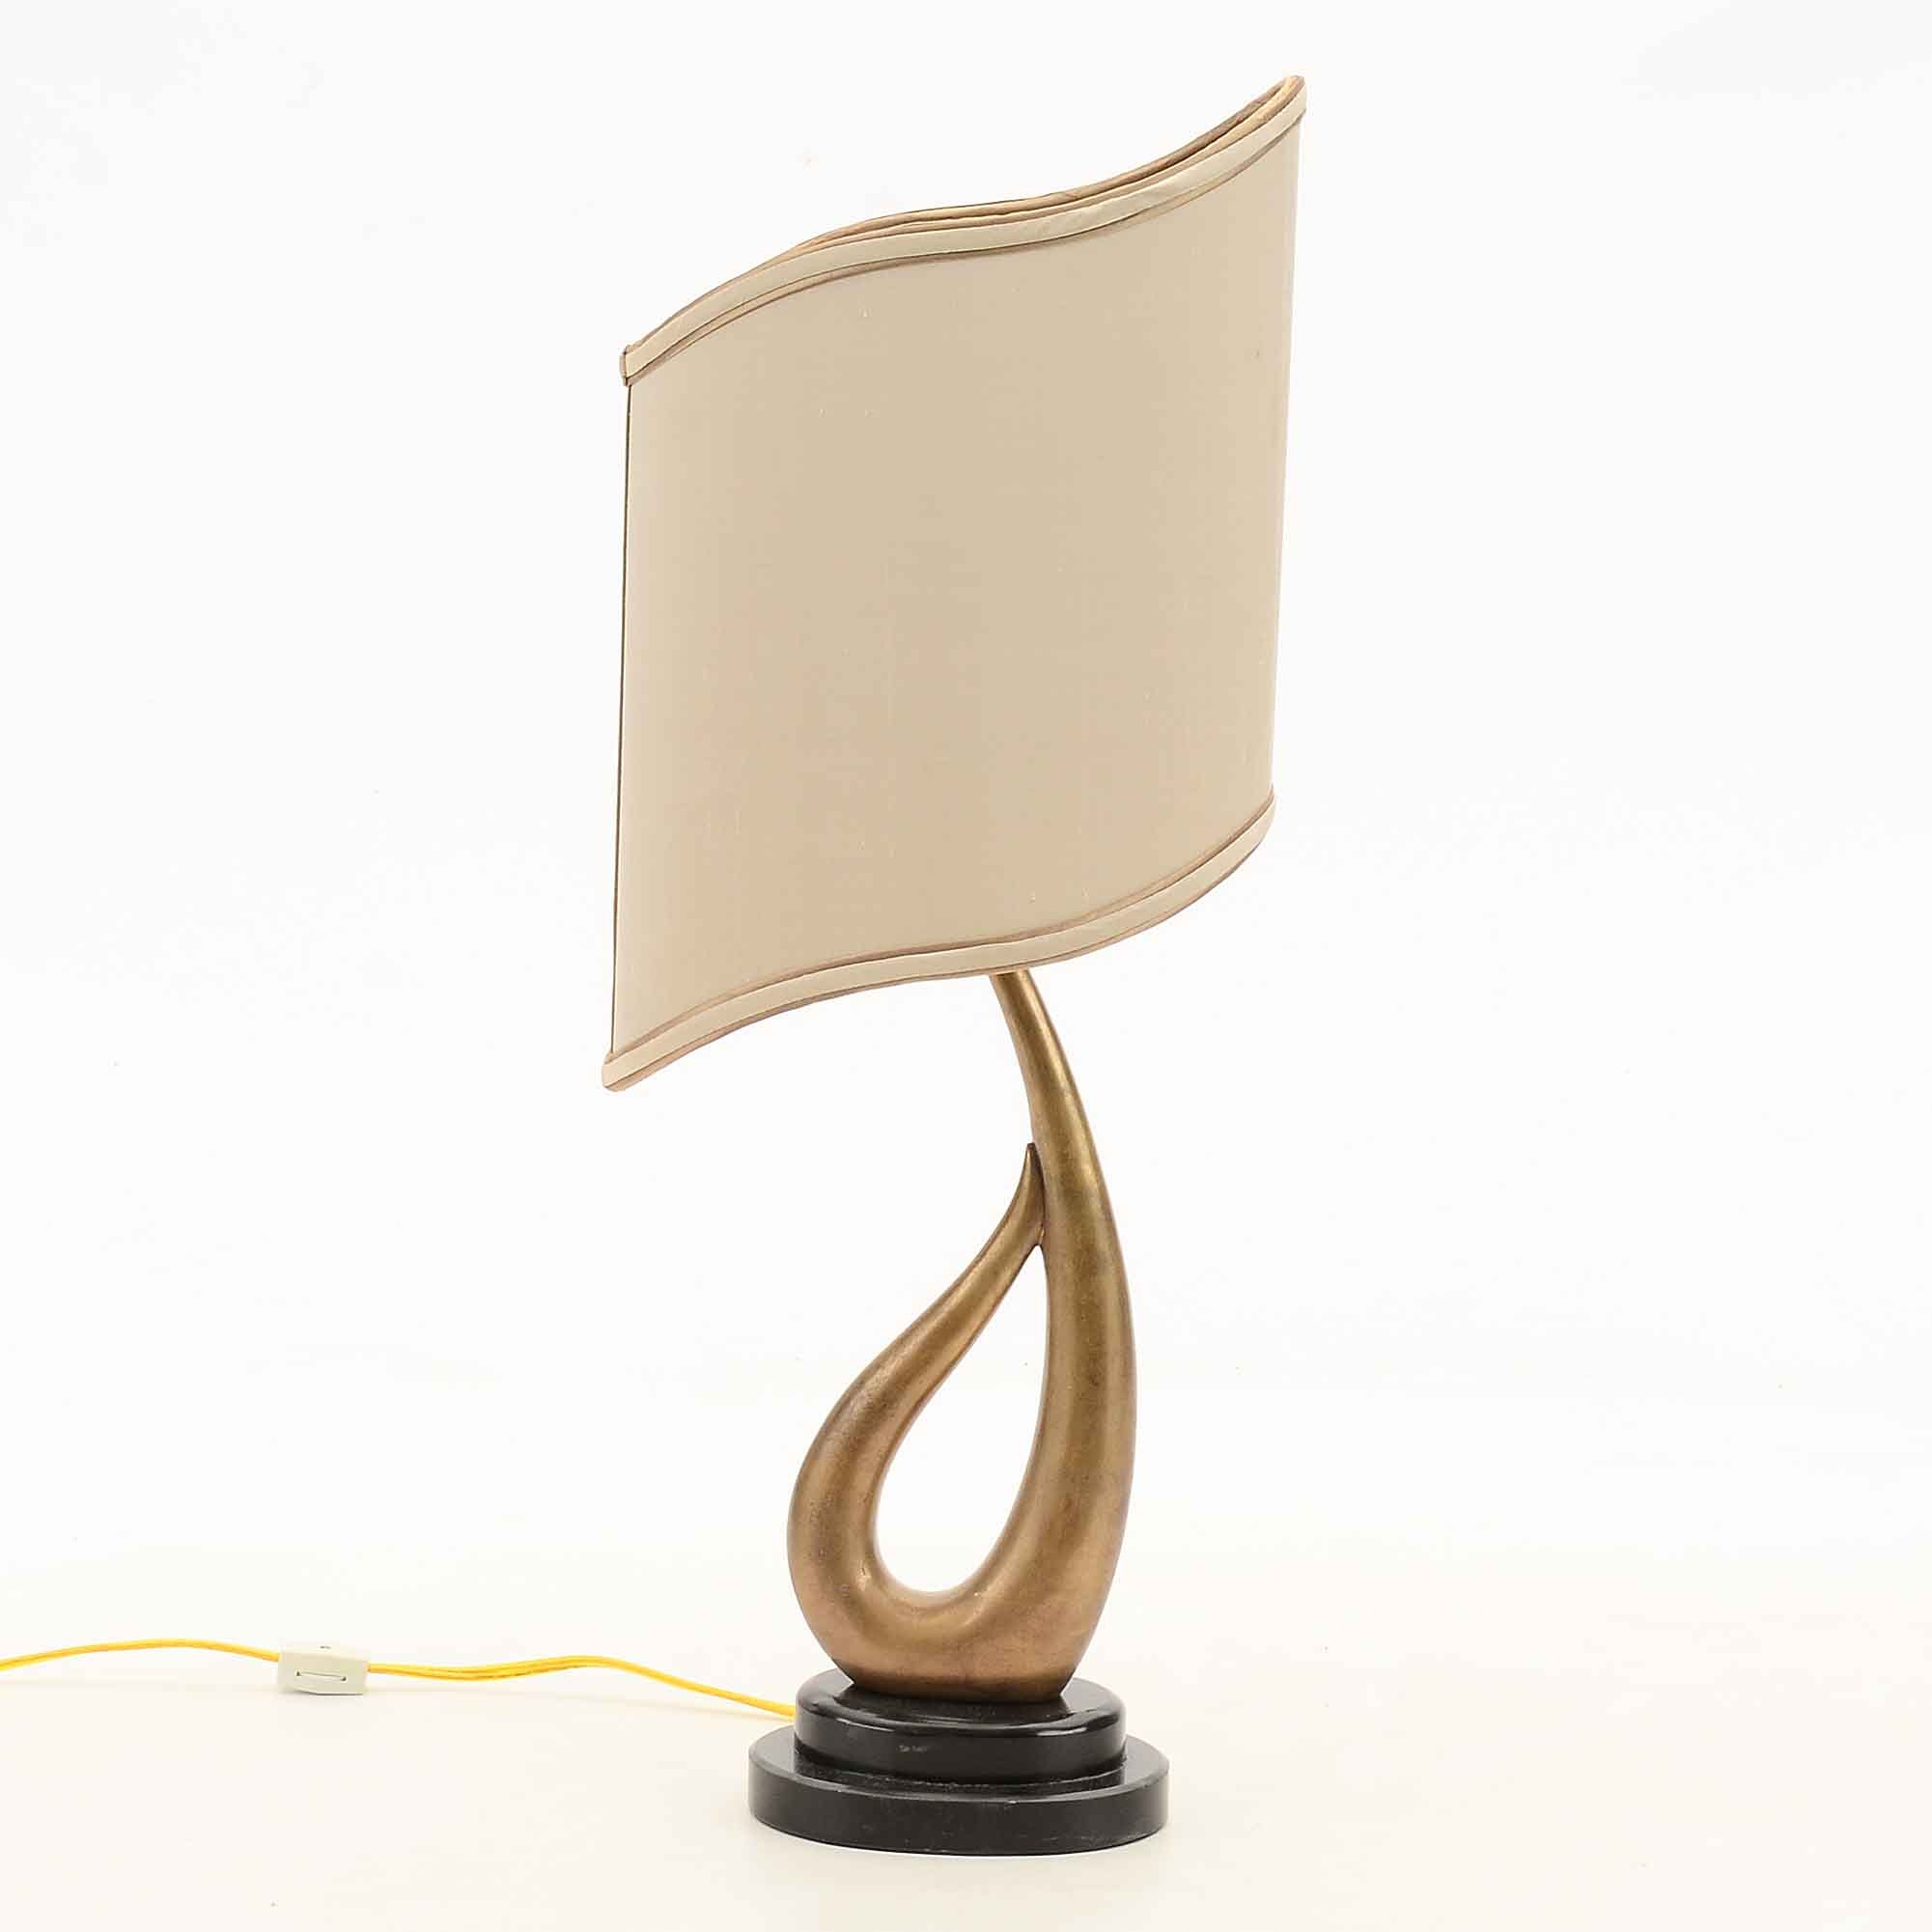 Vintage Brass Table Lamp with Sculptural Shade